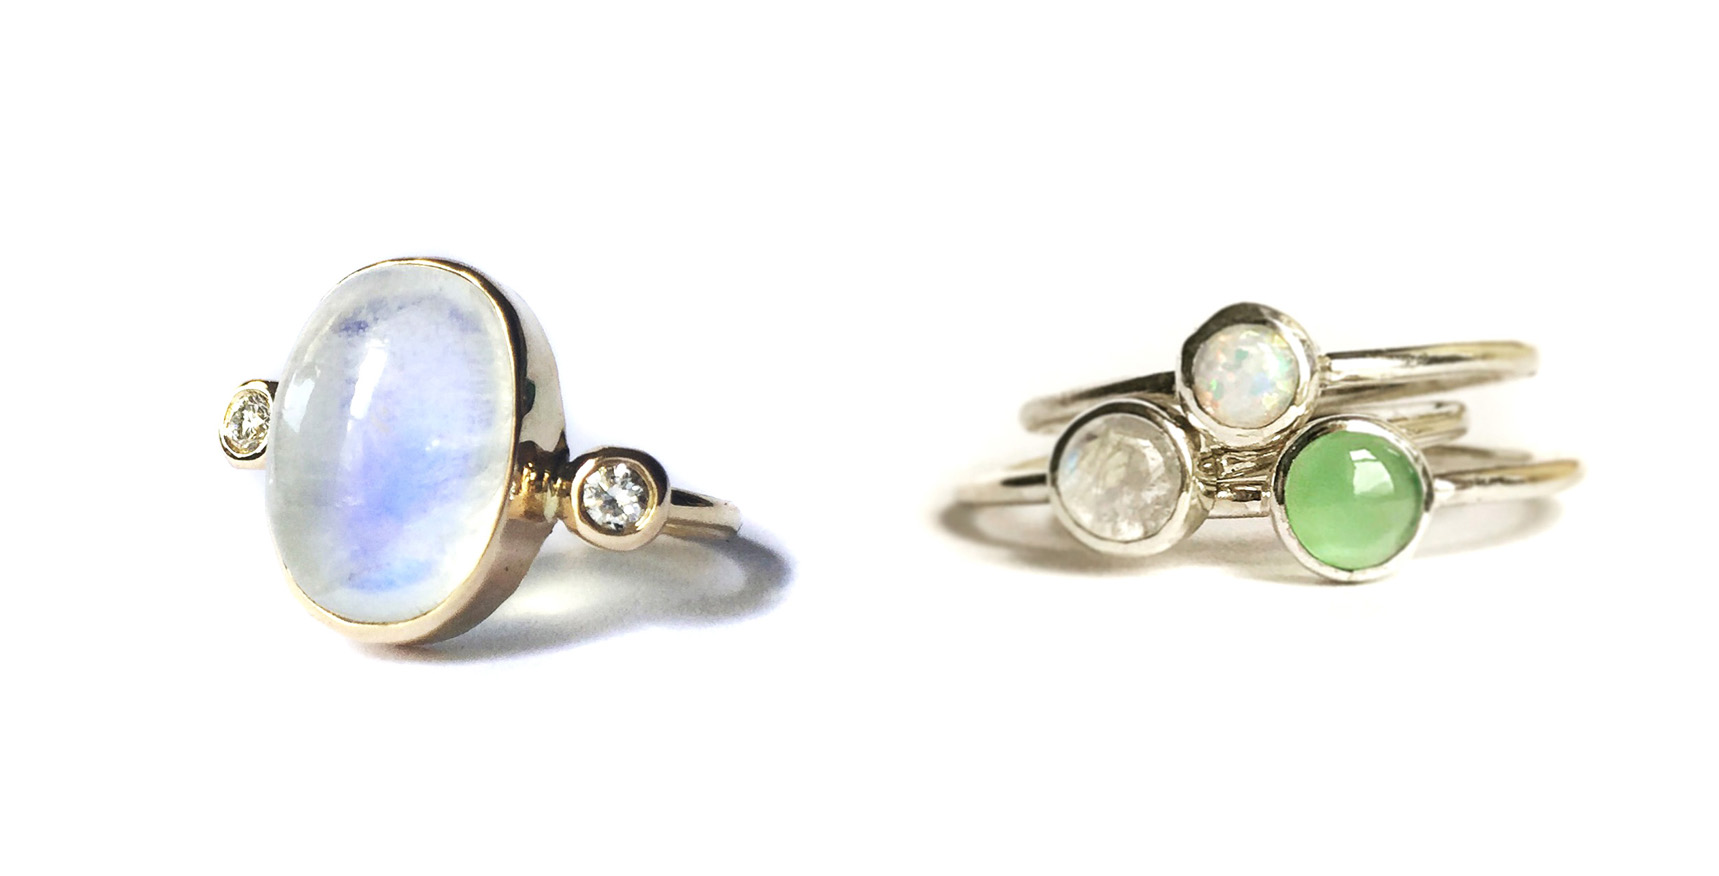 Moonstone cocktail ring in 14k gold with diamonds. Sterling silver stacking rings with opal, moonstone and chrysoprase.